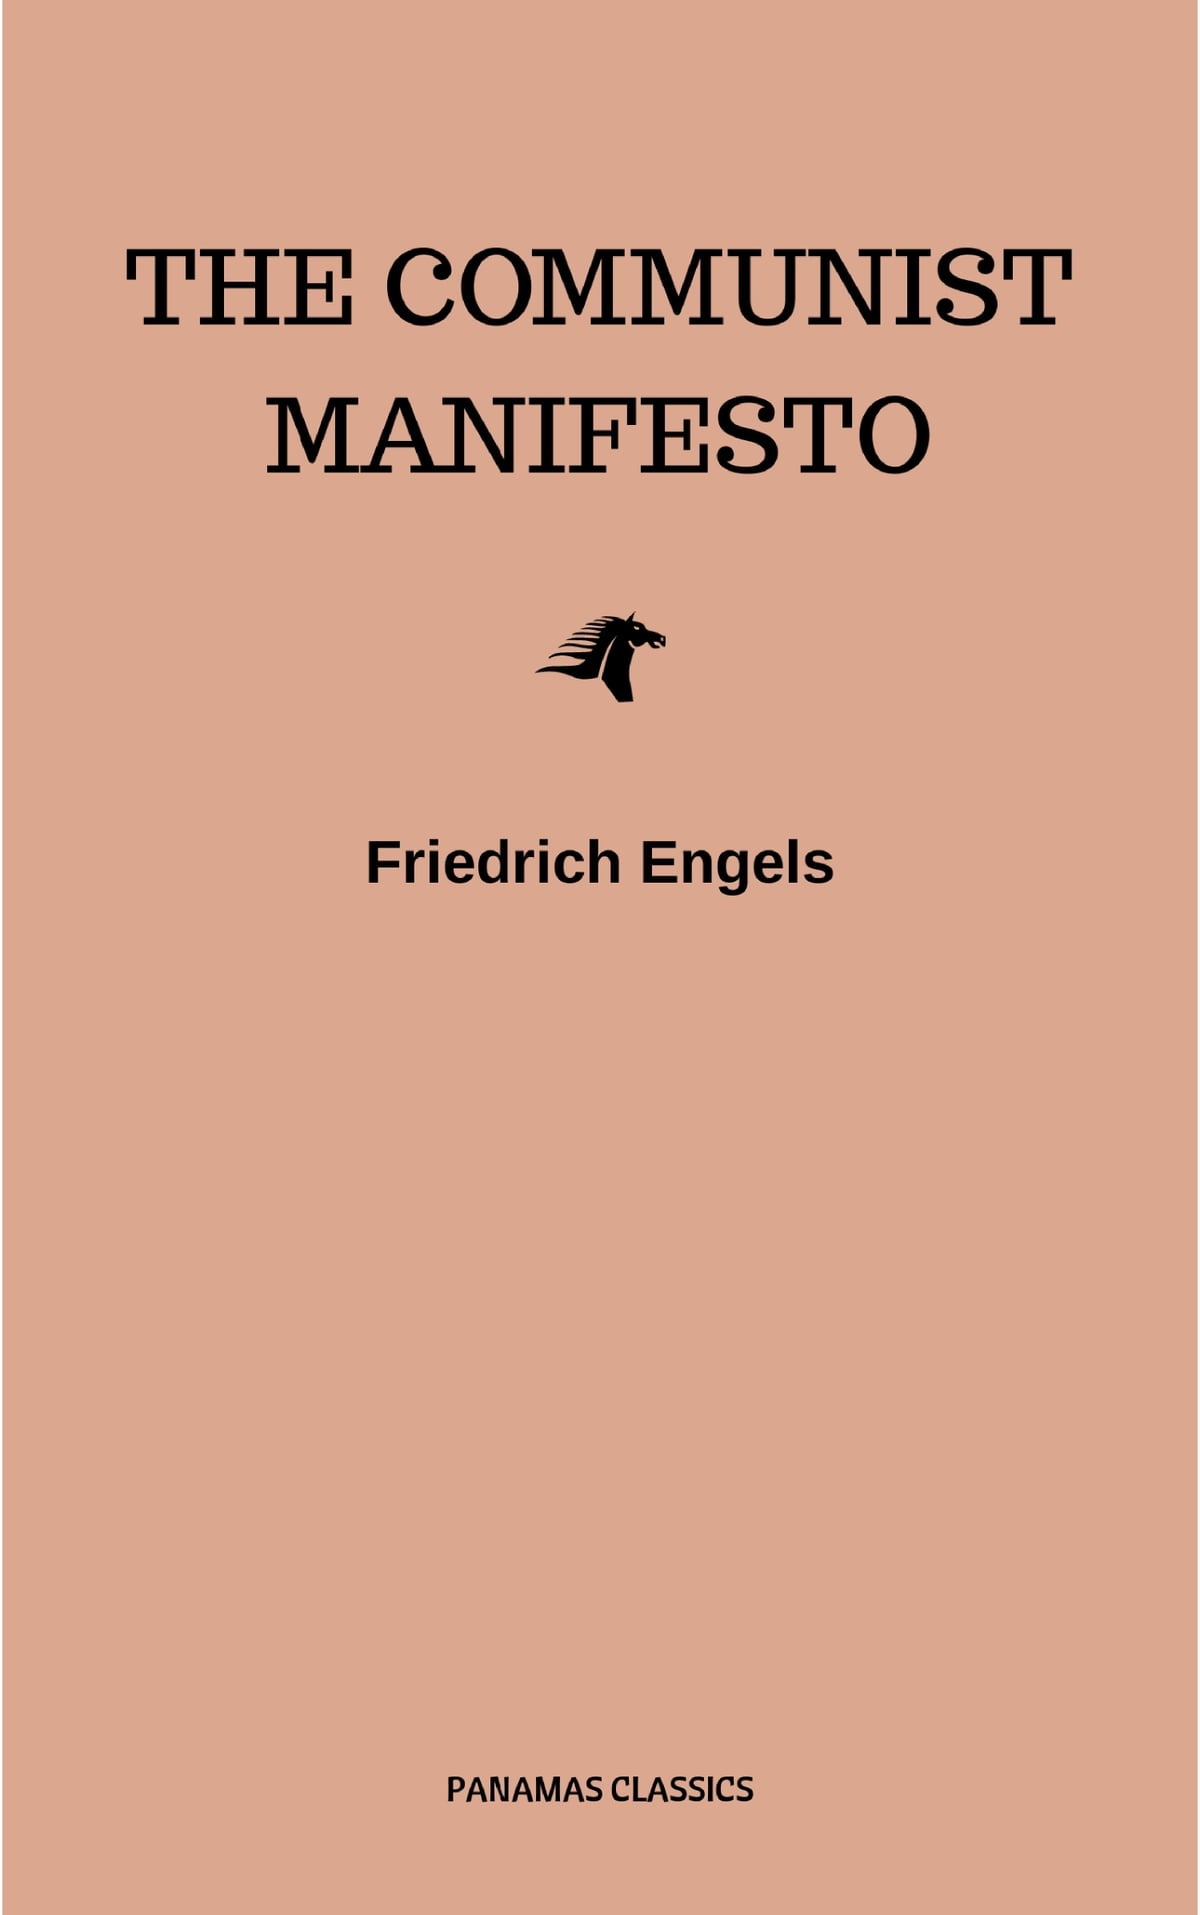 analysis of the communist manifesto The communist manifesto begins with marx's famous generalization that the history of all hitherto existing society is the history of class chapter 1 analysis: bourgeois and proletarians the communist manifesto was first published on the eve of the revolutions which rocked europe in 1848.